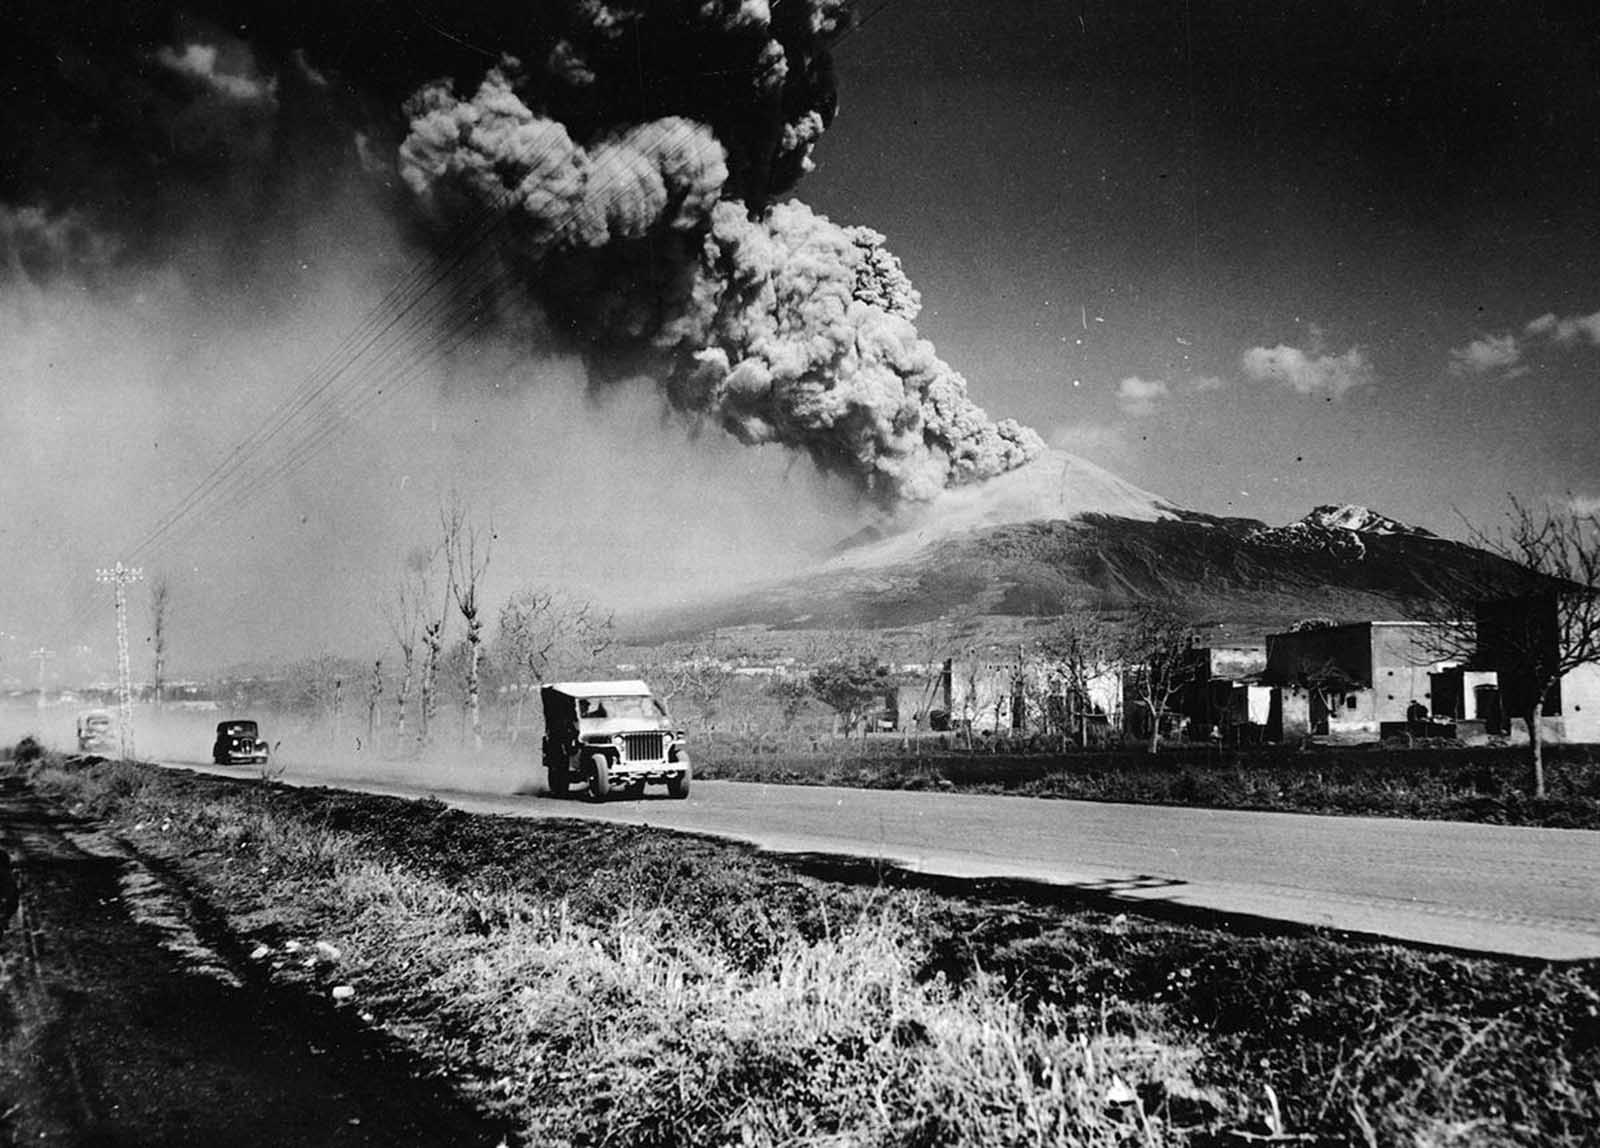 Mt. Vesuvius spewing ash into the sky, erupting as a U.S. Army jeep speeds by shortly after the arrival of the Allied forces in Naples, Italy in 1944.